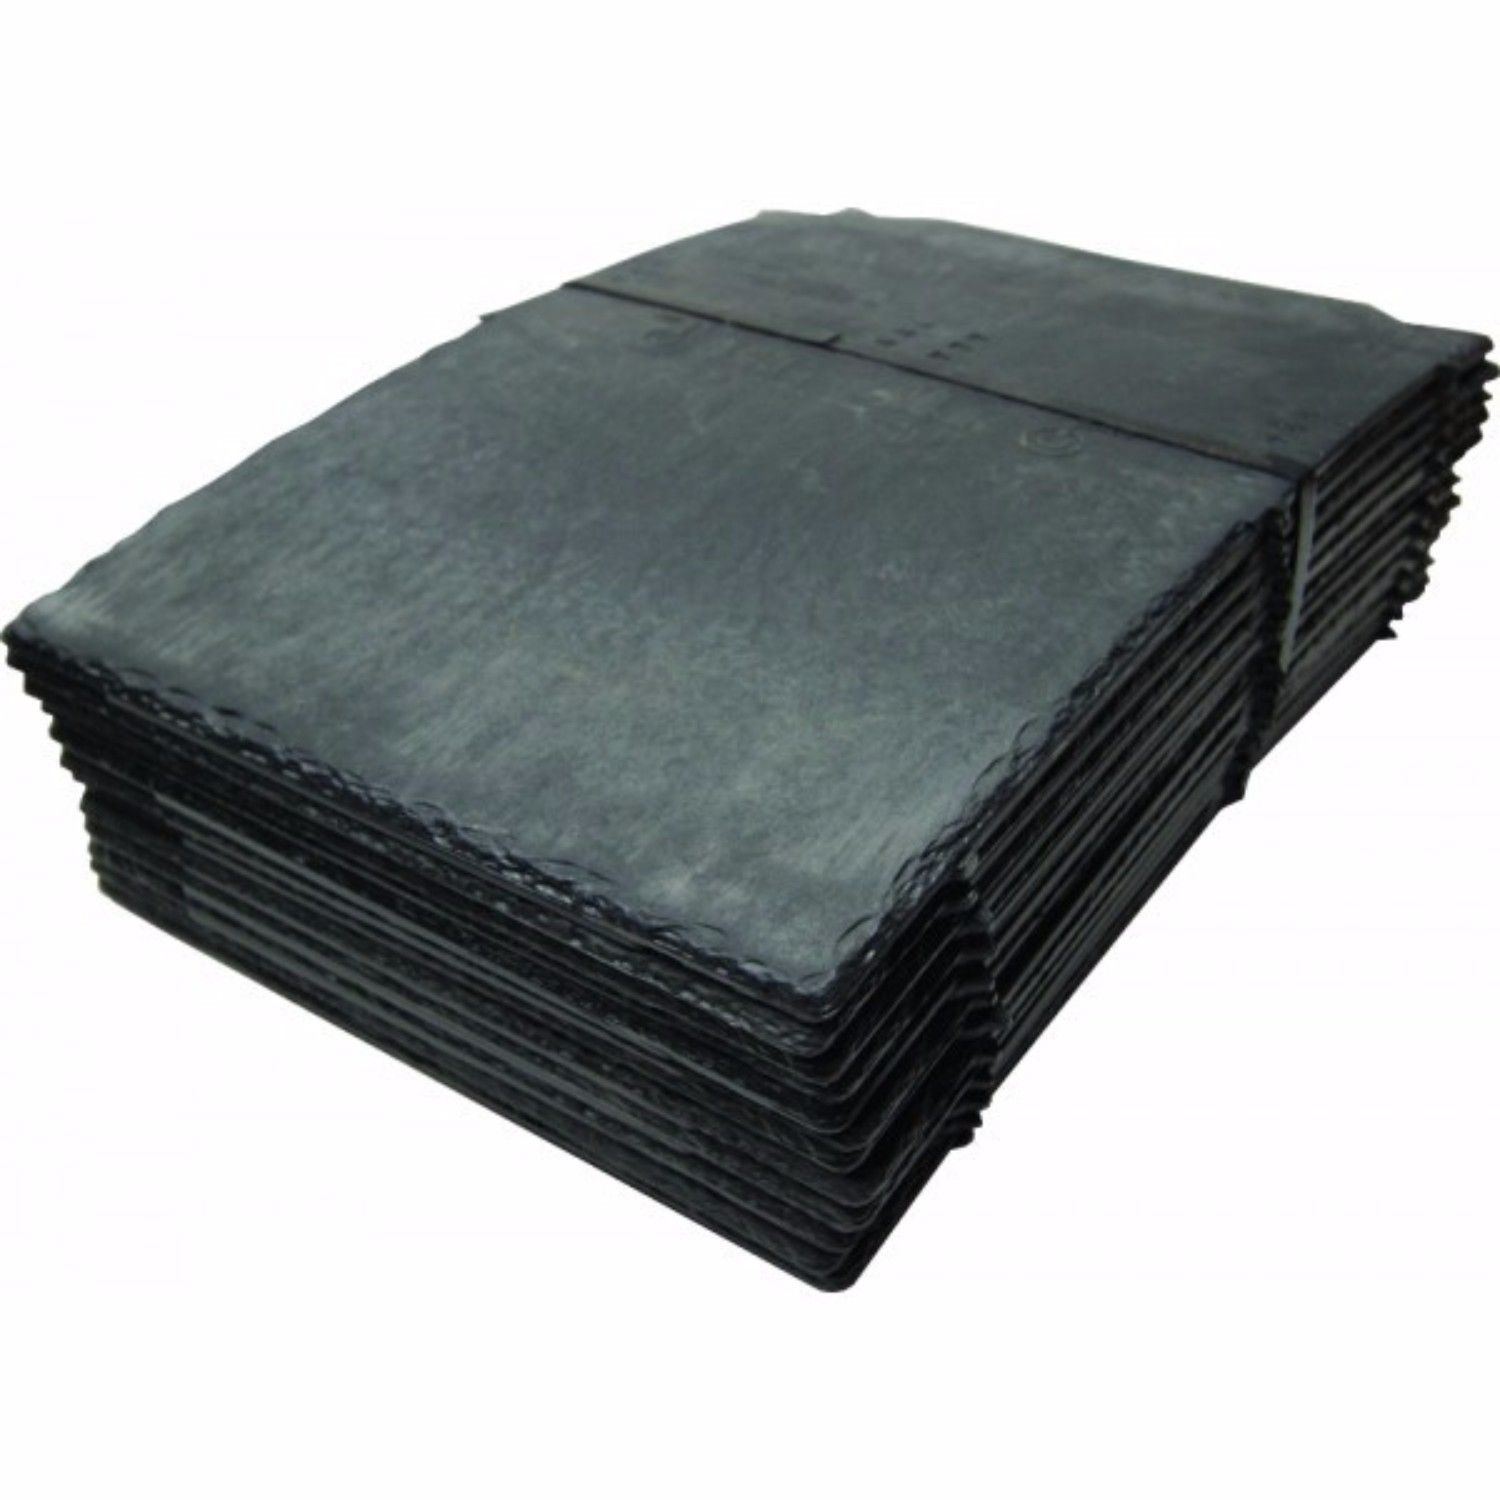 Tapco Synthetic Slate Tile - Pewter Grey (25 Pack)